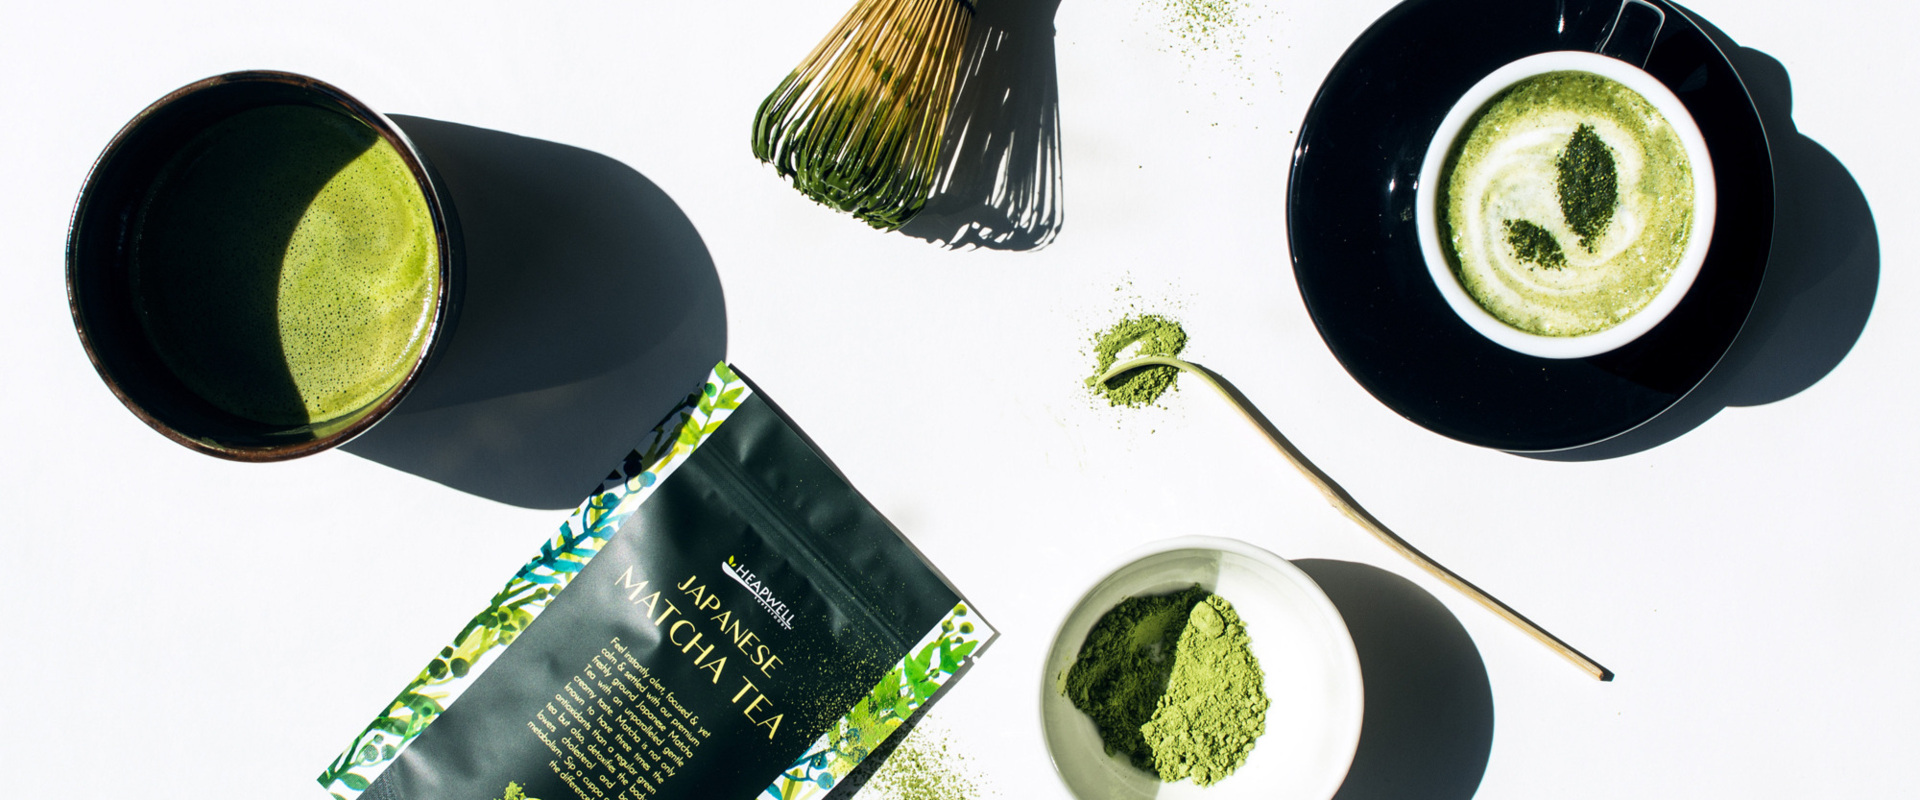 premium ceremonial matcha green tea from japan